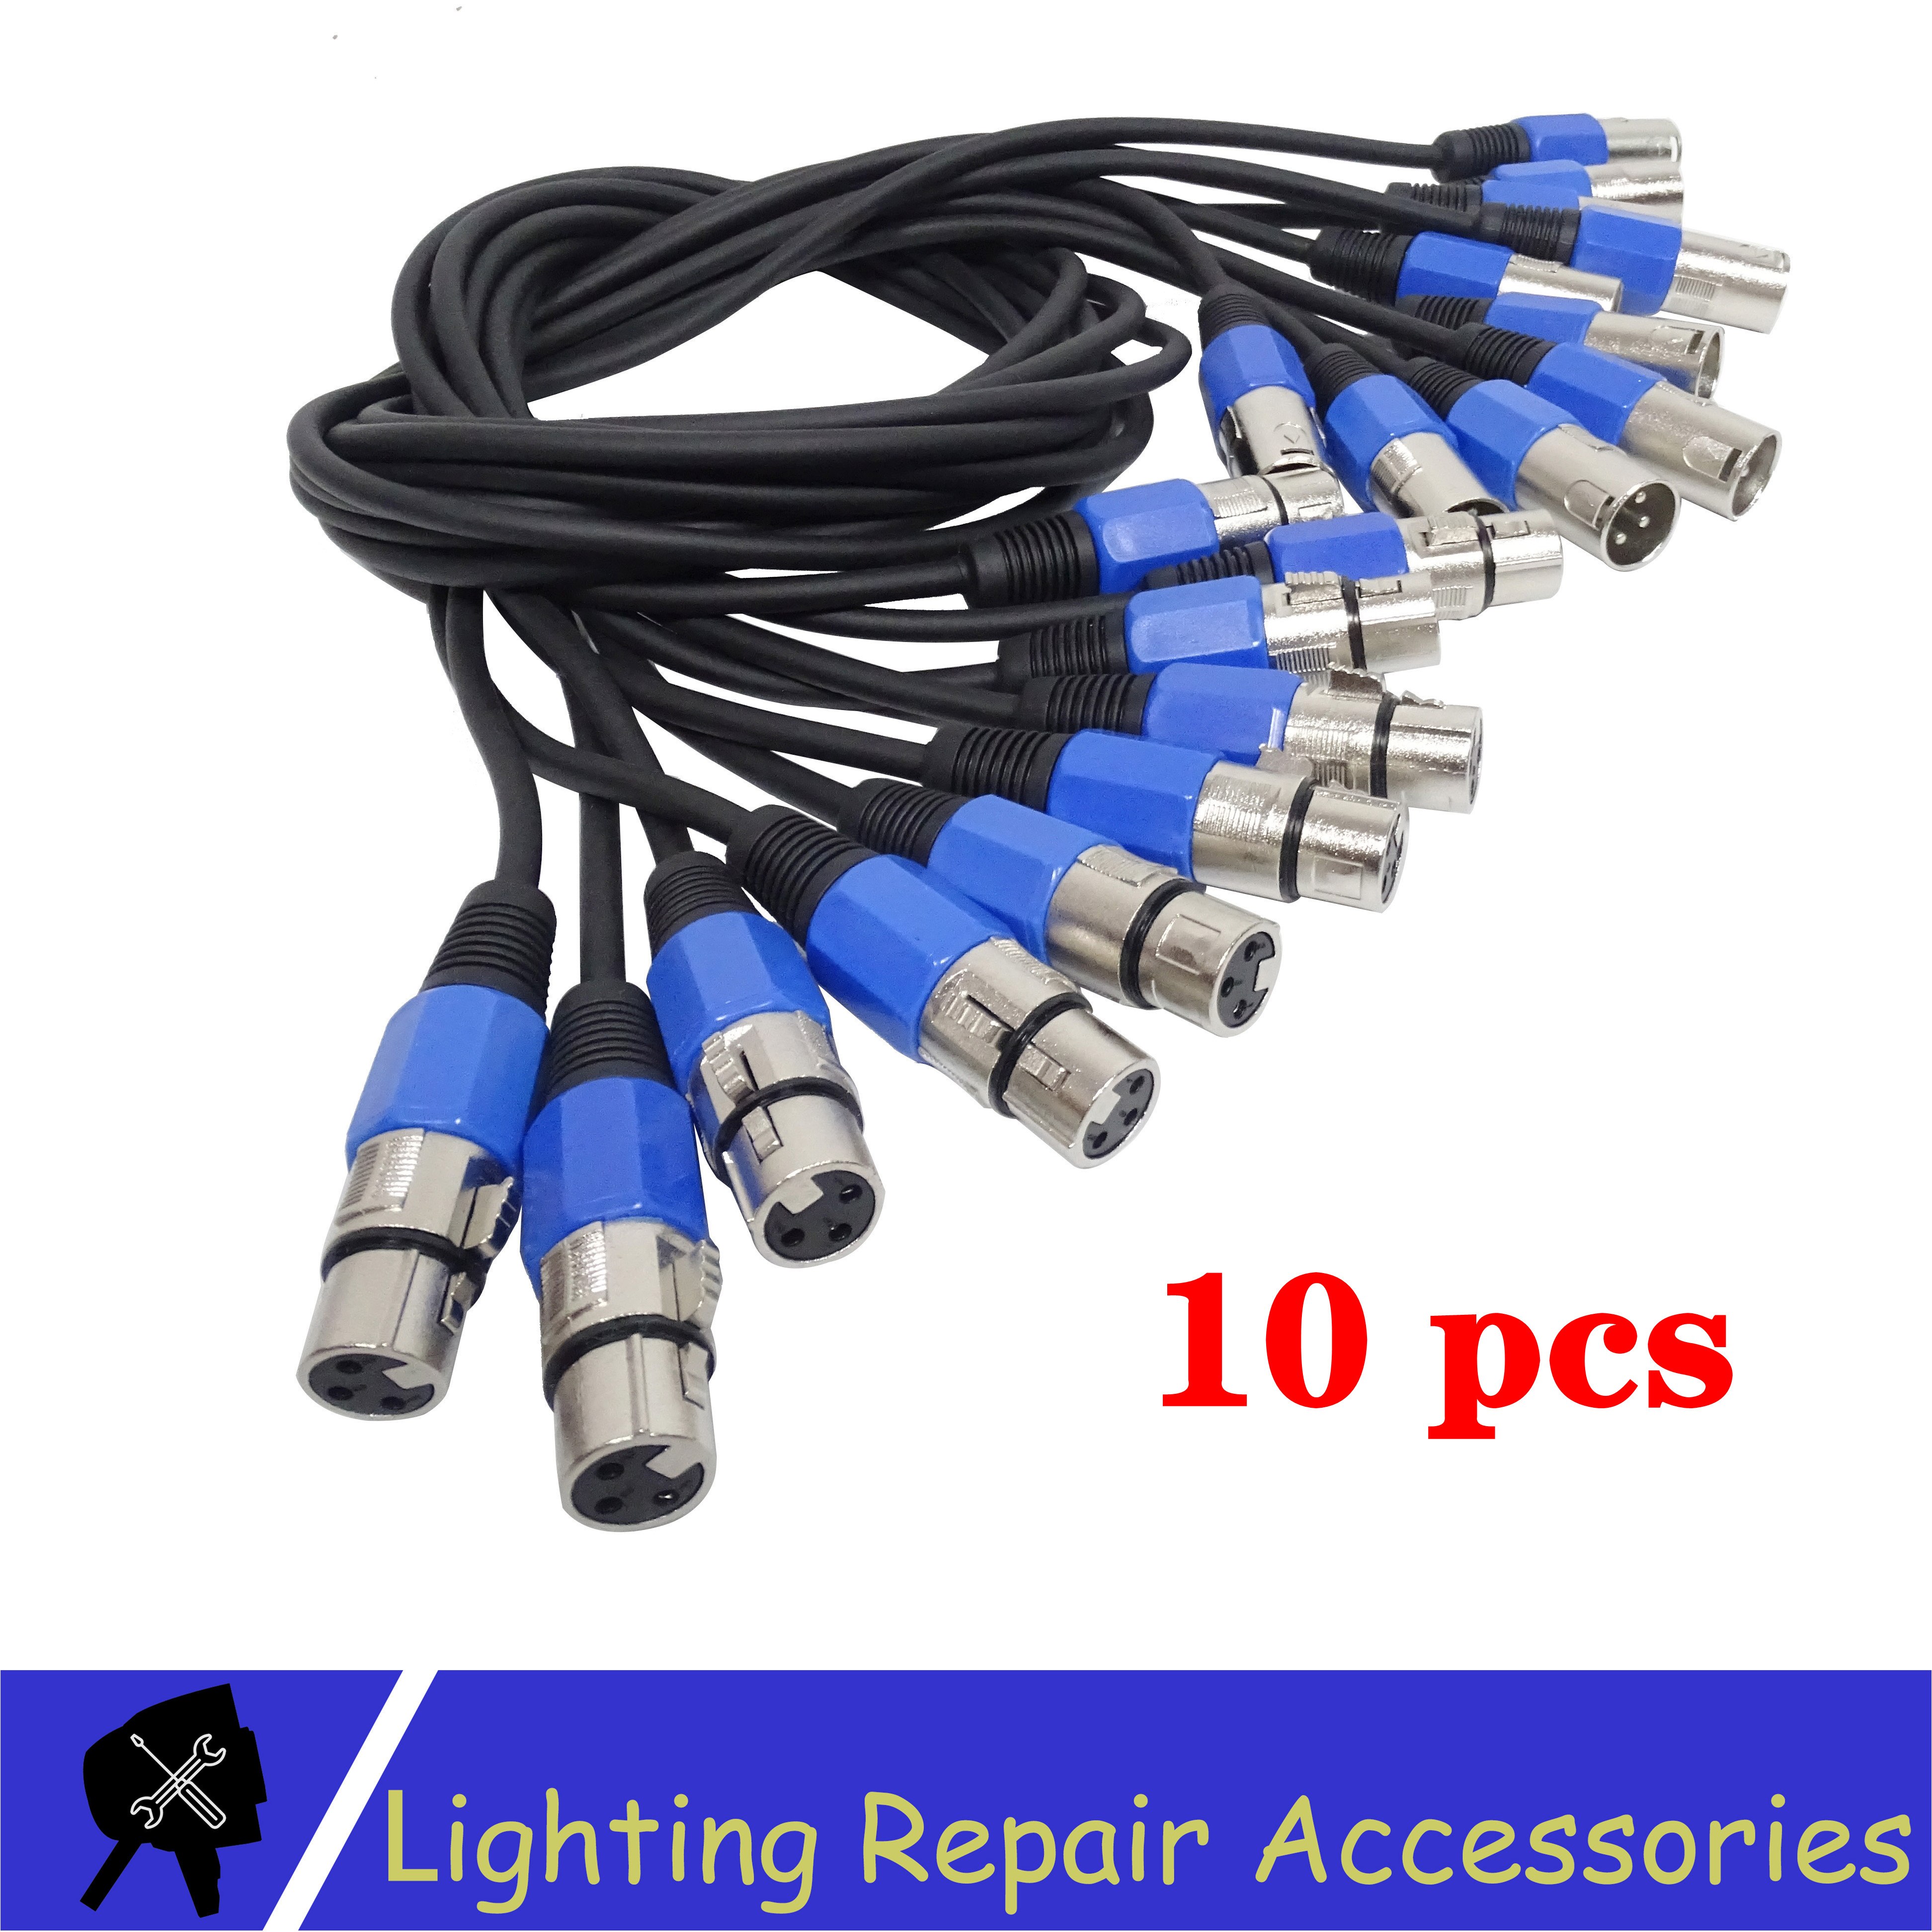 Free Tax 10Pcs/lots 3-PIN DMX Cable 1M/2M/3M/5M/10M Led Par Light Connection Cable DMX Signal Line Used For Stage Light